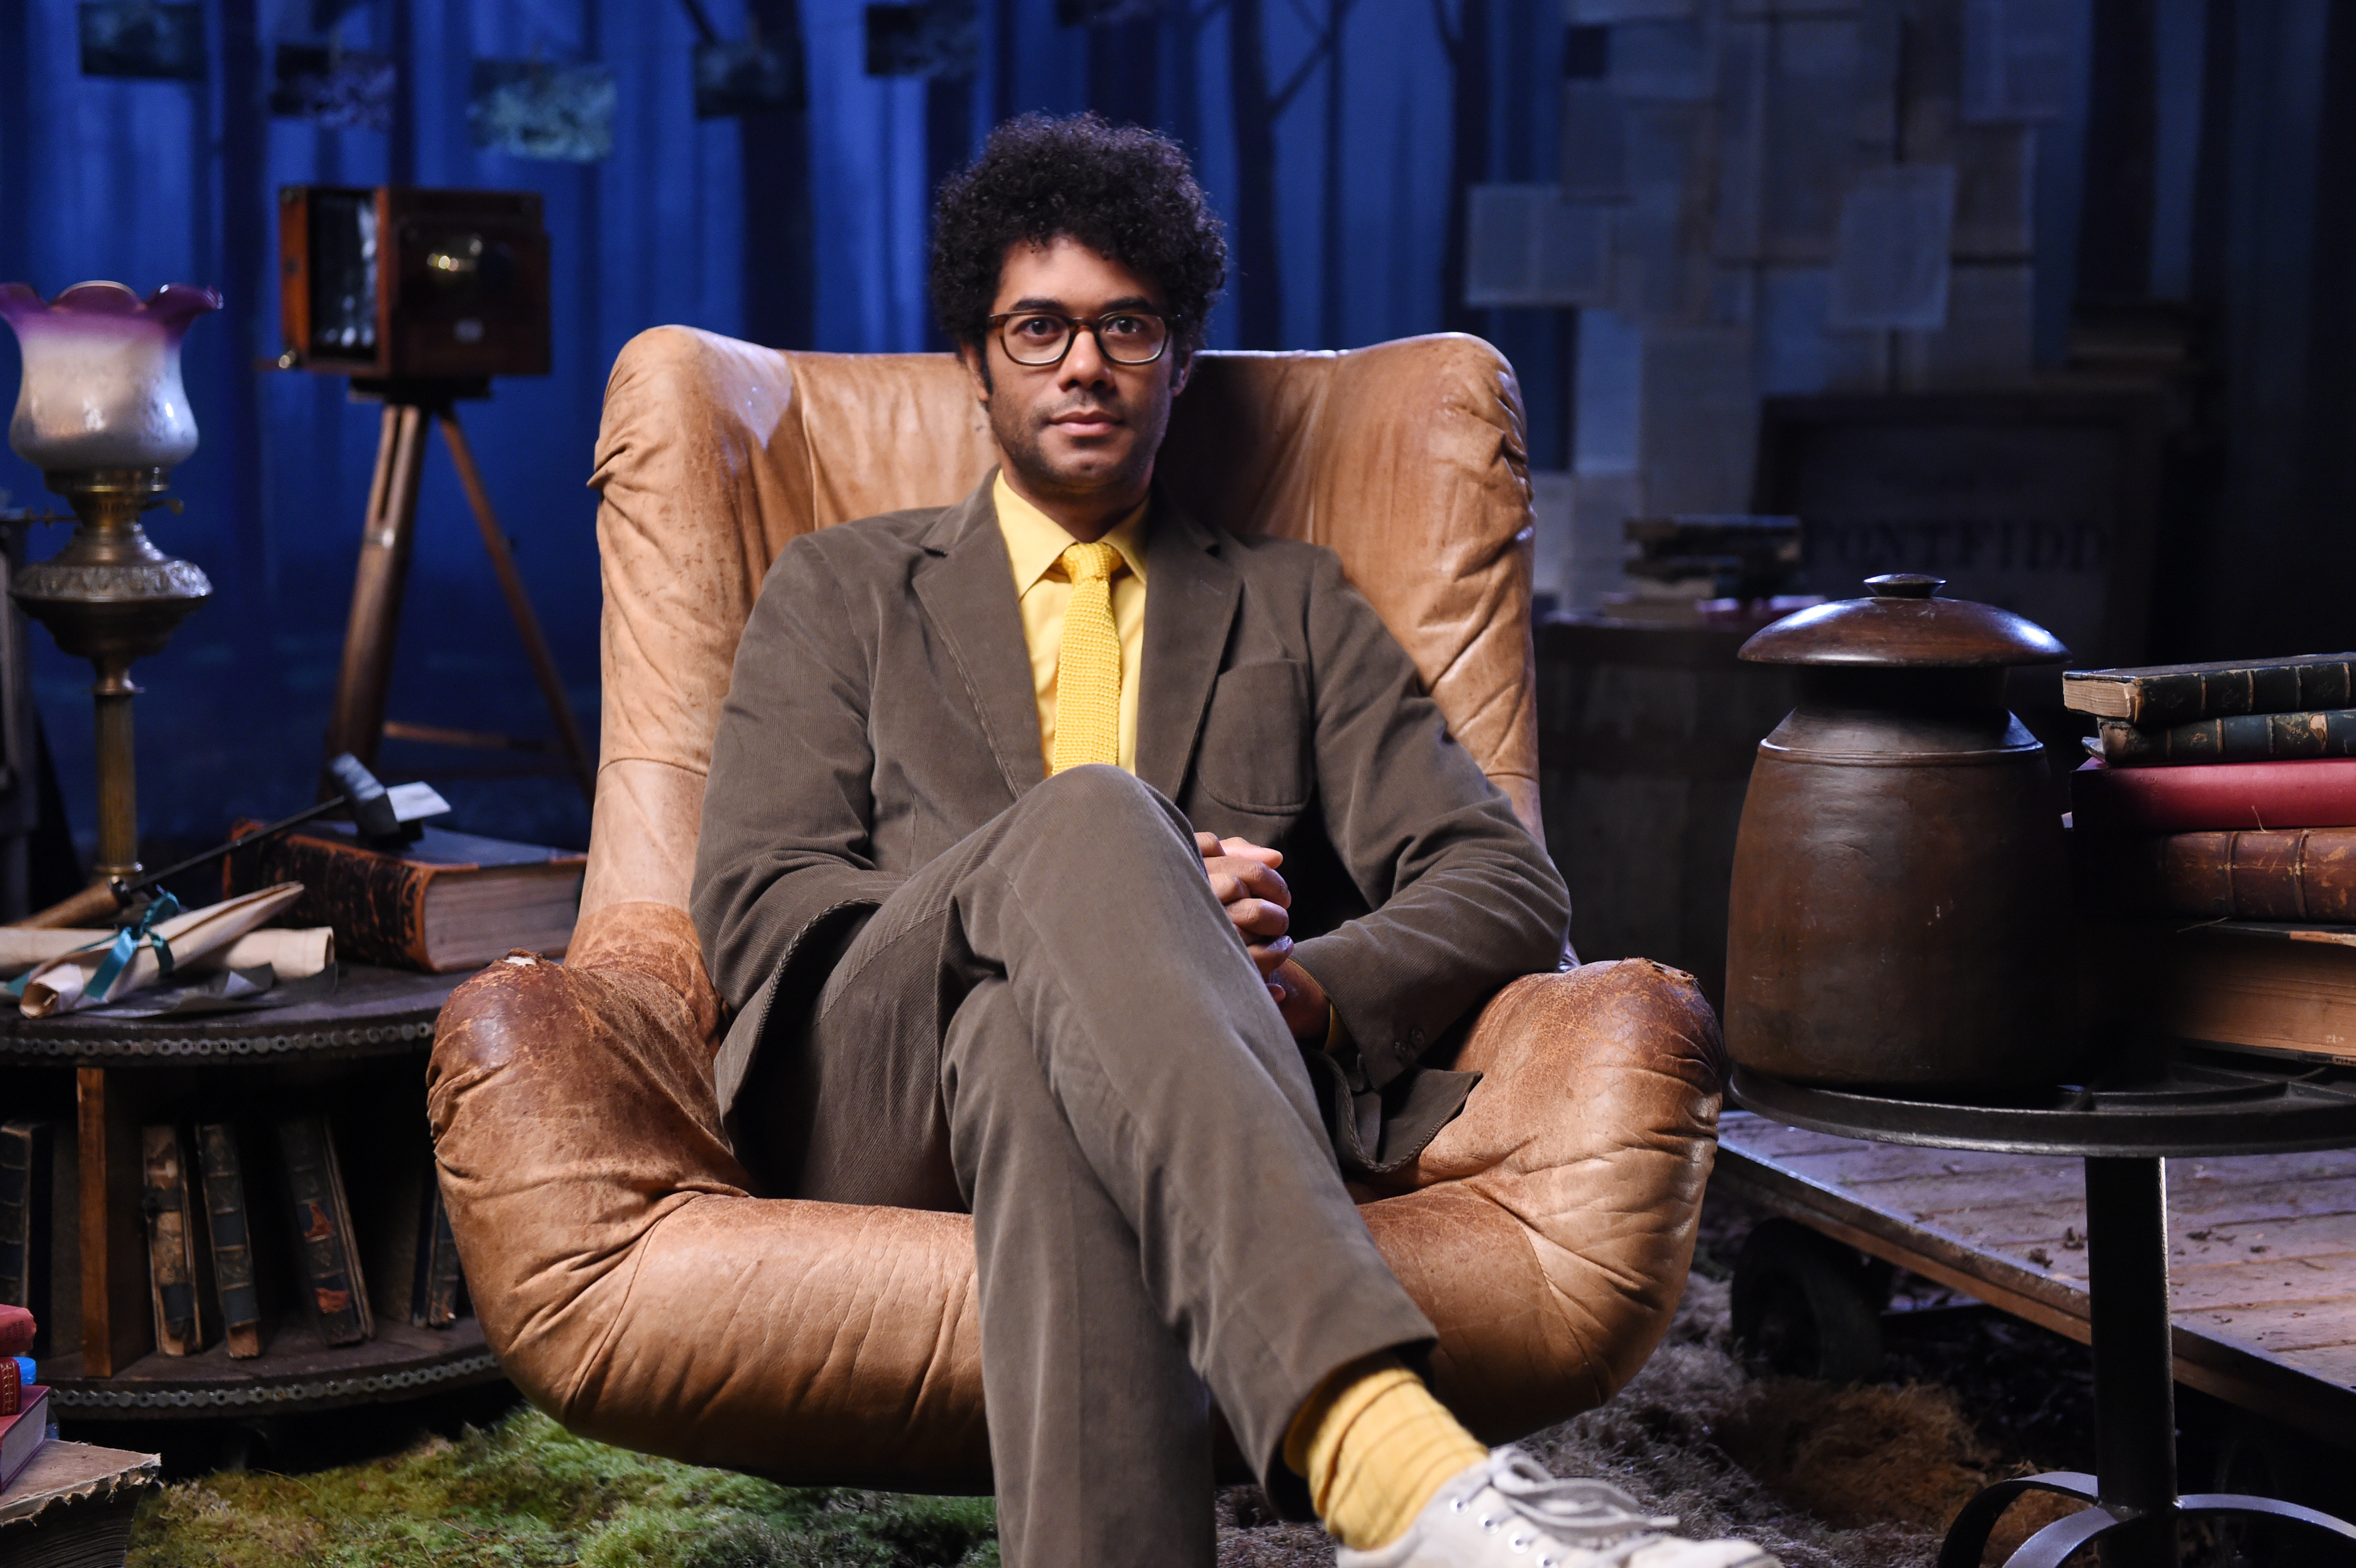 Crackanory – Series 3 – Episode 02 – Richard Ayoade